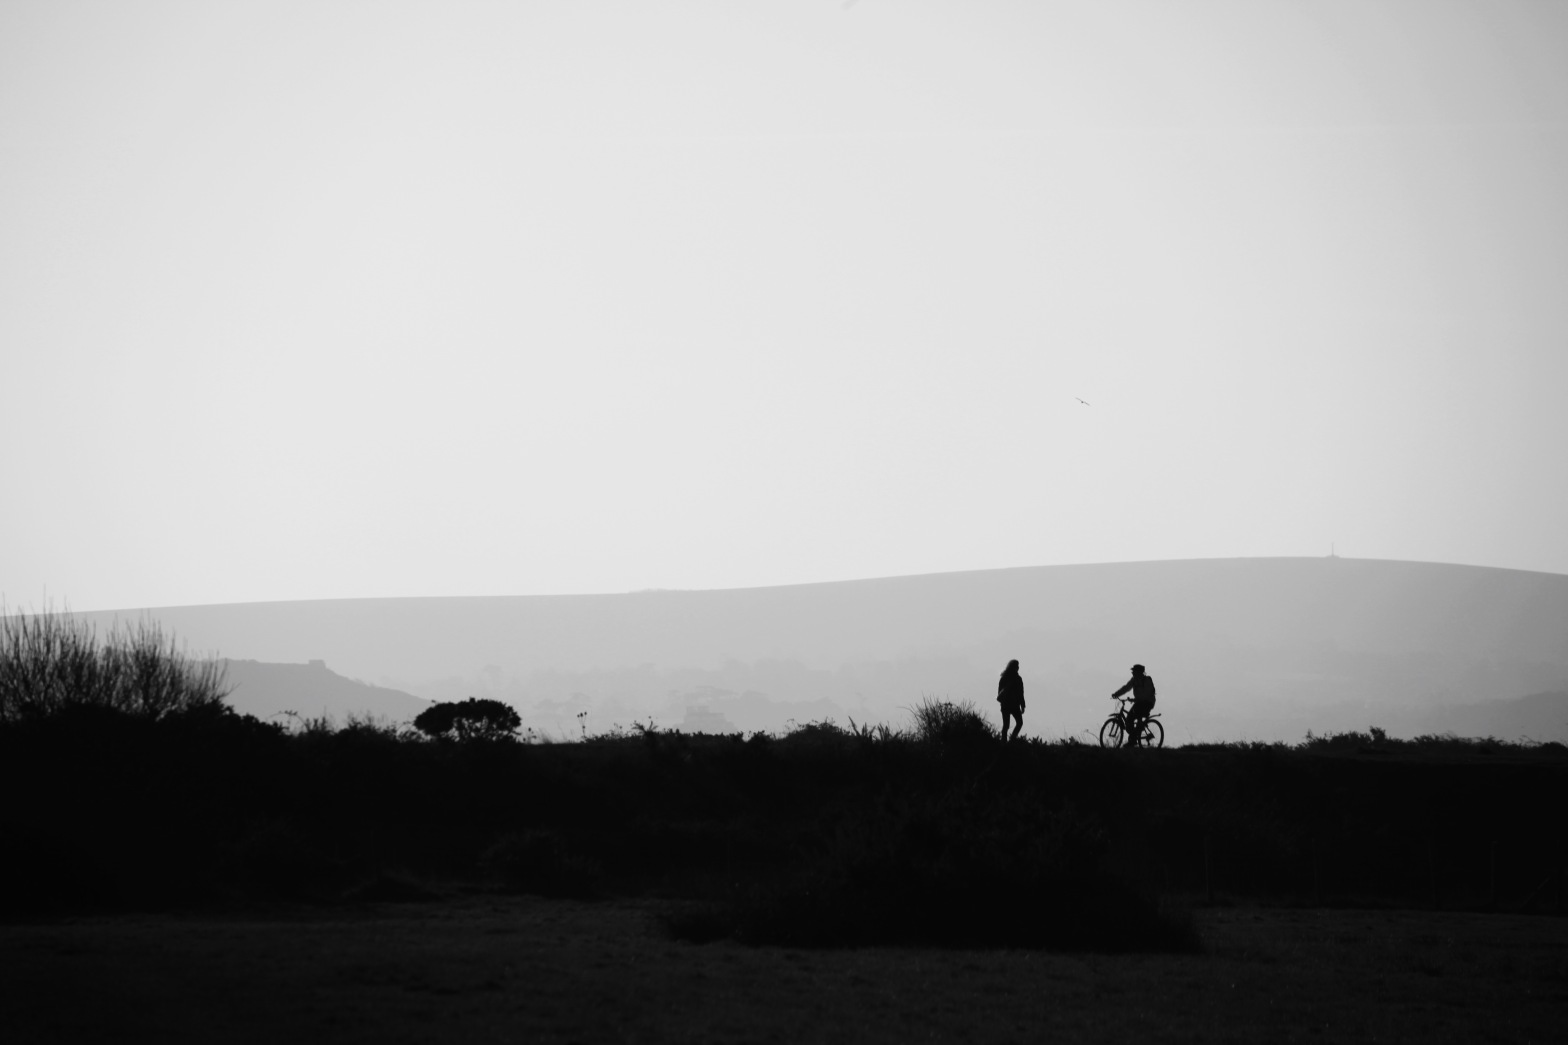 Walker and cyclist silhouette